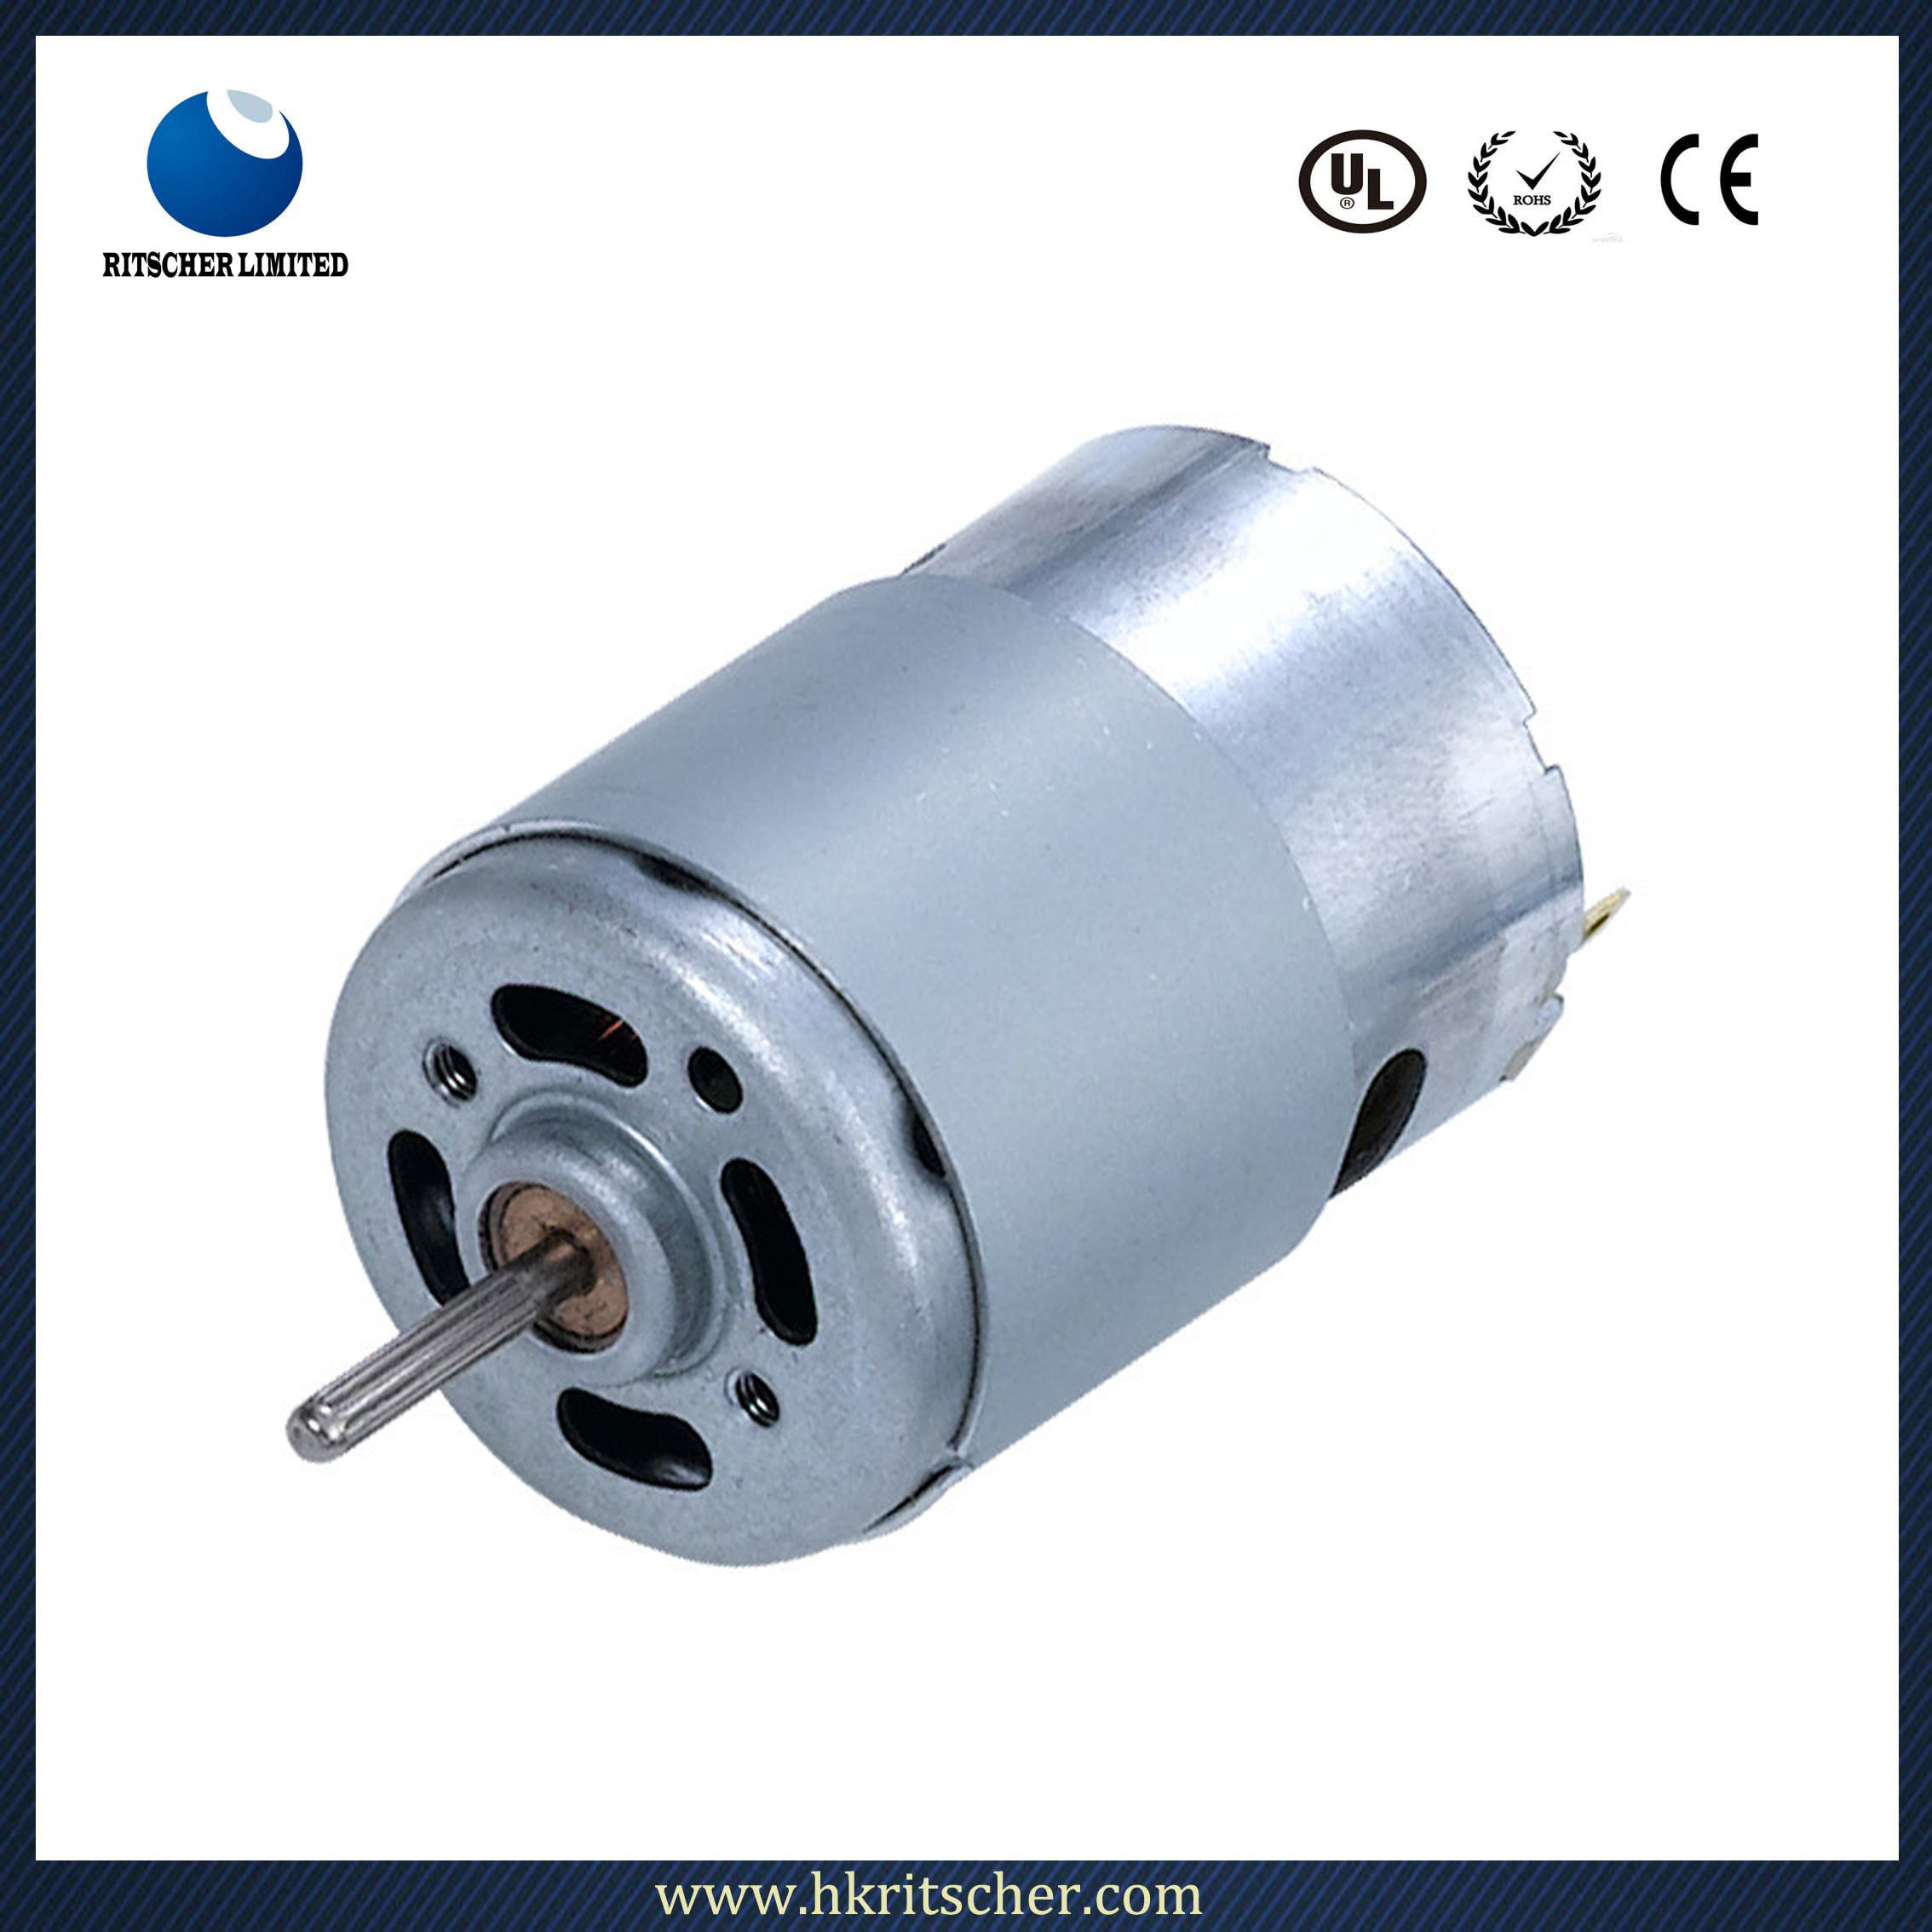 China 12 24v Dc Mini Electric Pmdc Vibration Motor For New Energy Auto With Vde Certification Fitness Aratus Brush